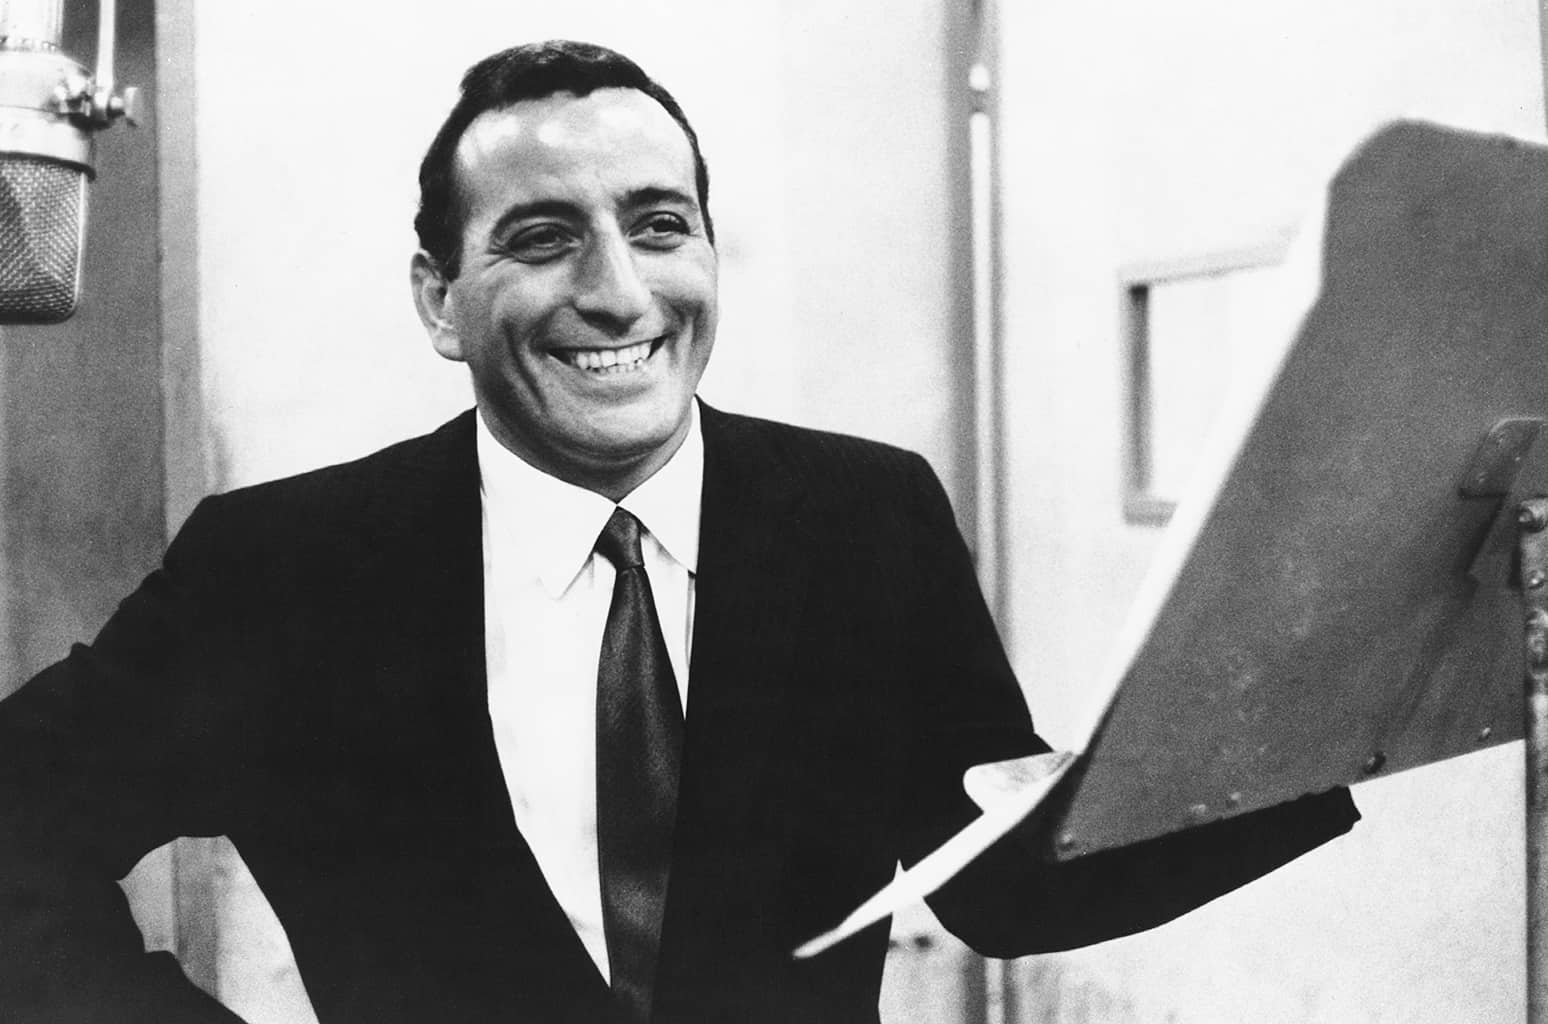 Did you Know Tony Bennett Once Sang In The Wildwoods?